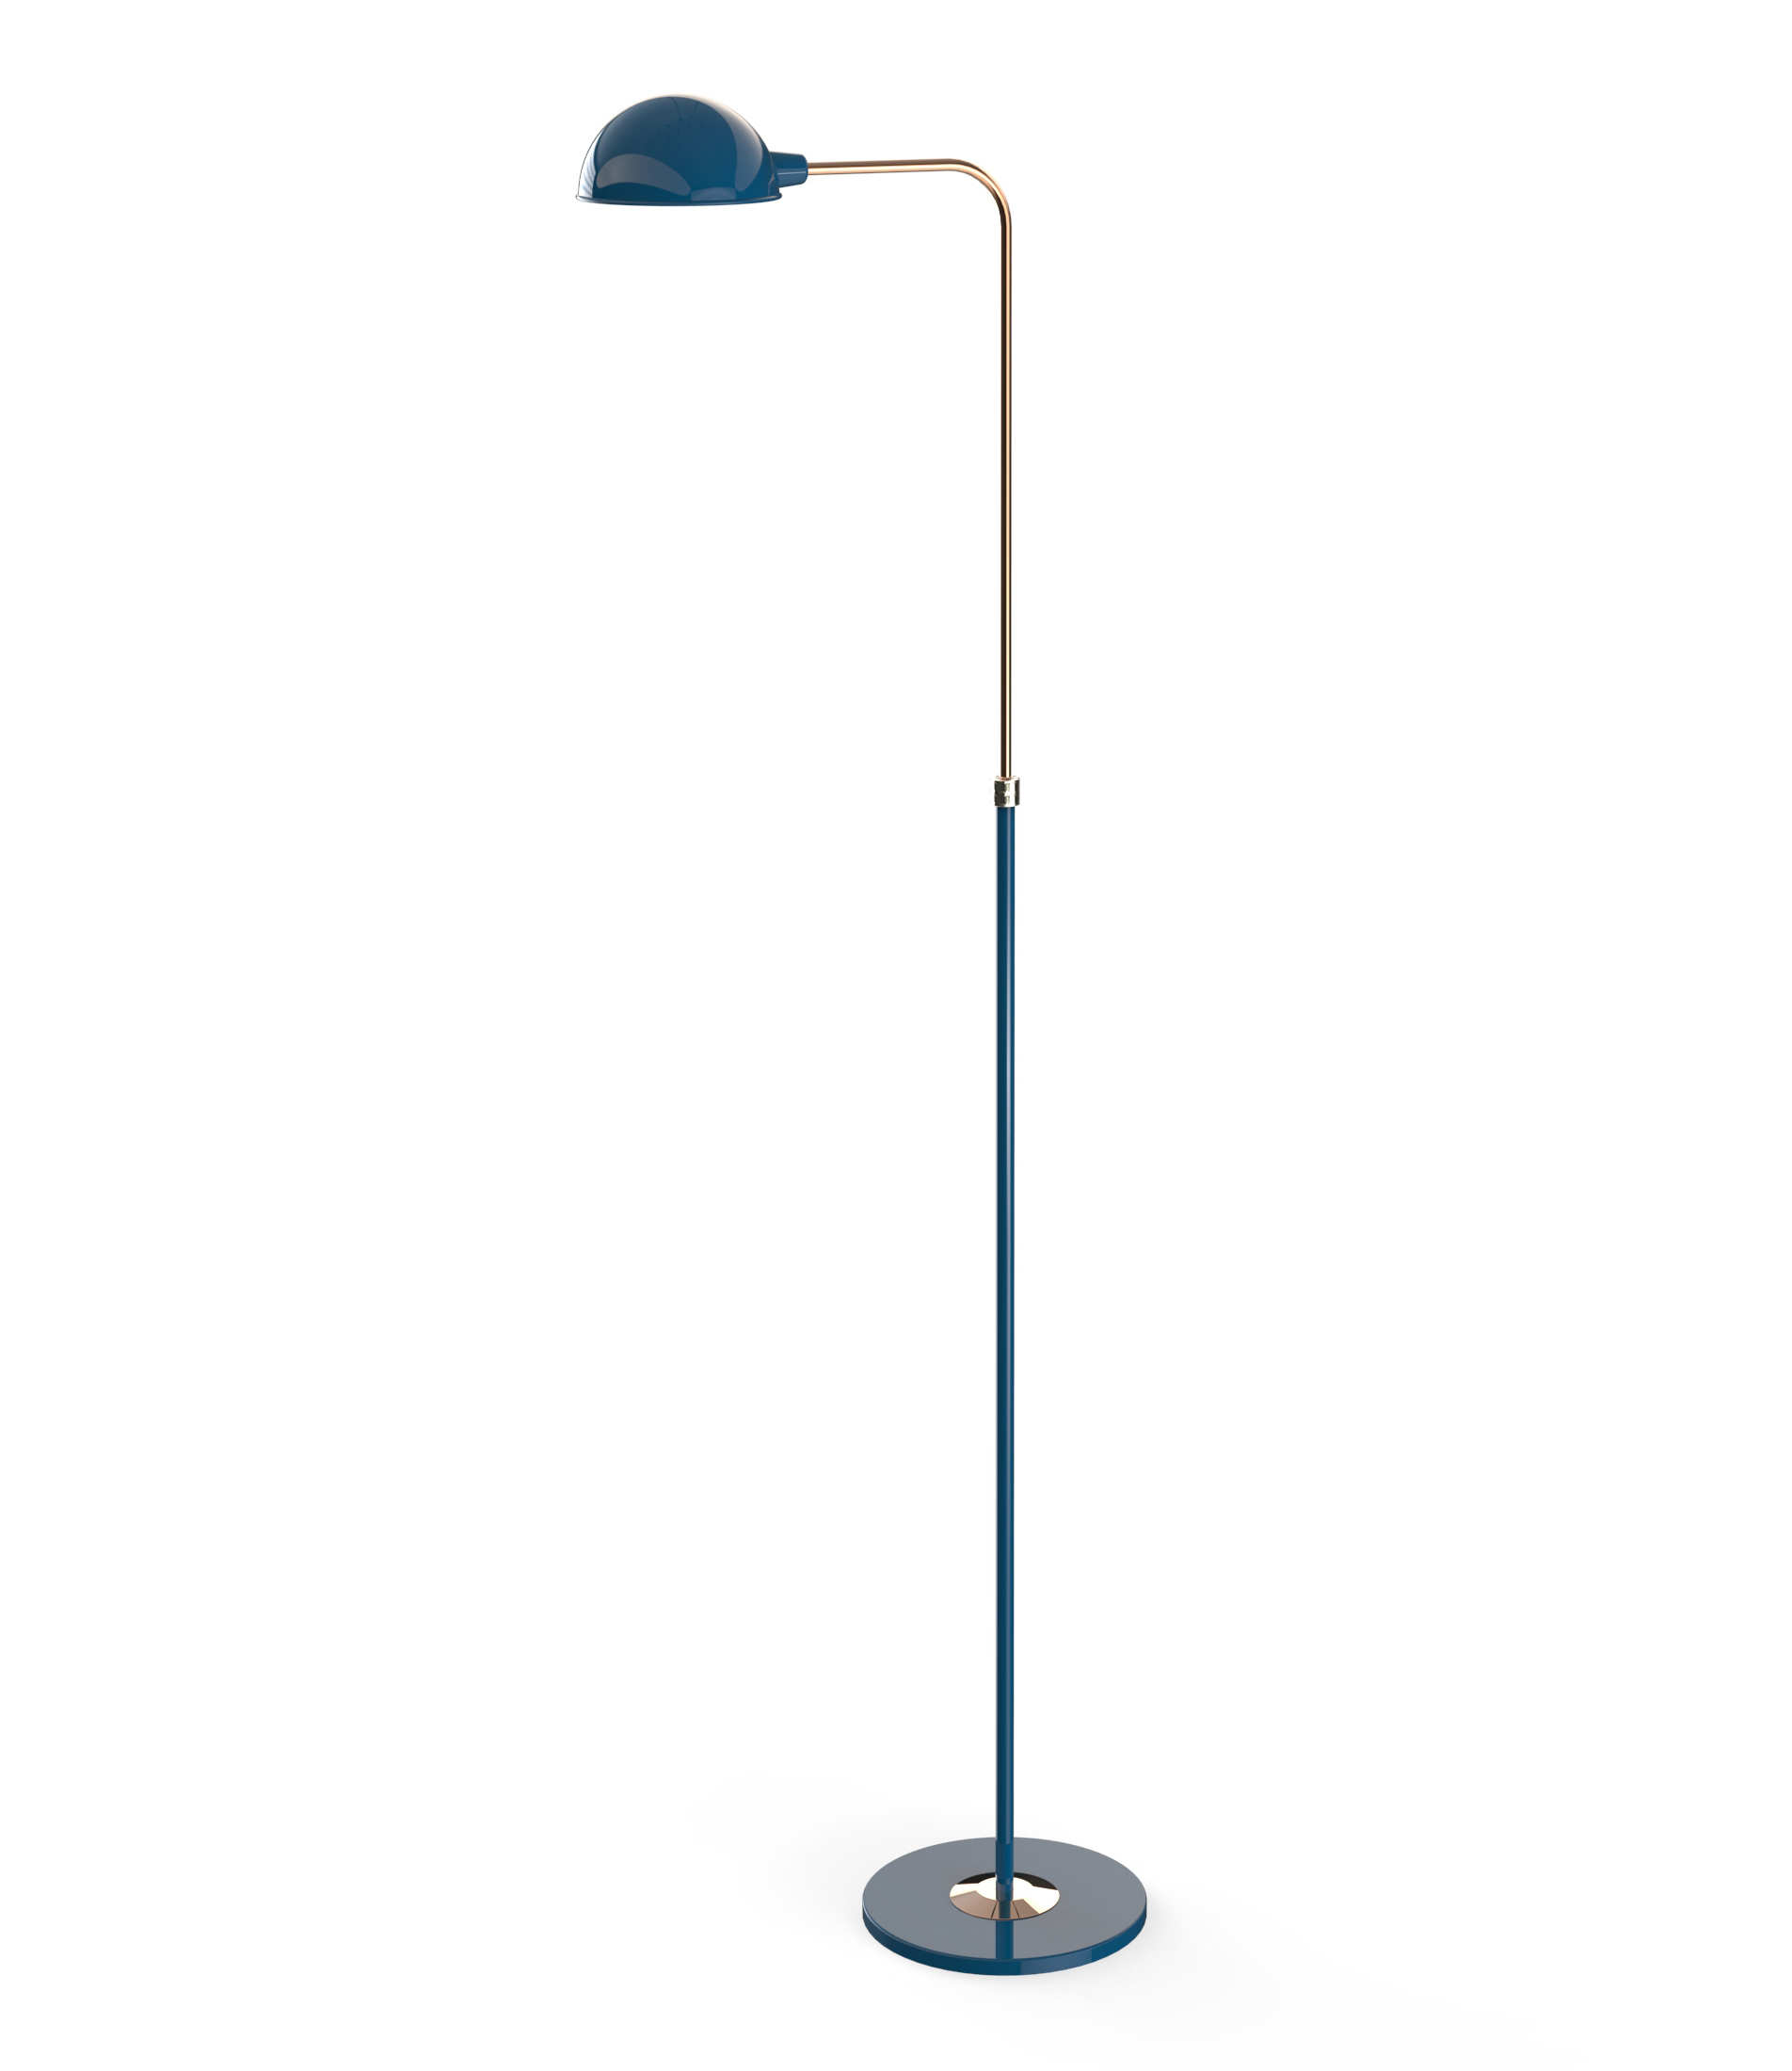 modern this lamps much a be lamp another pin perimeter option for floor but might